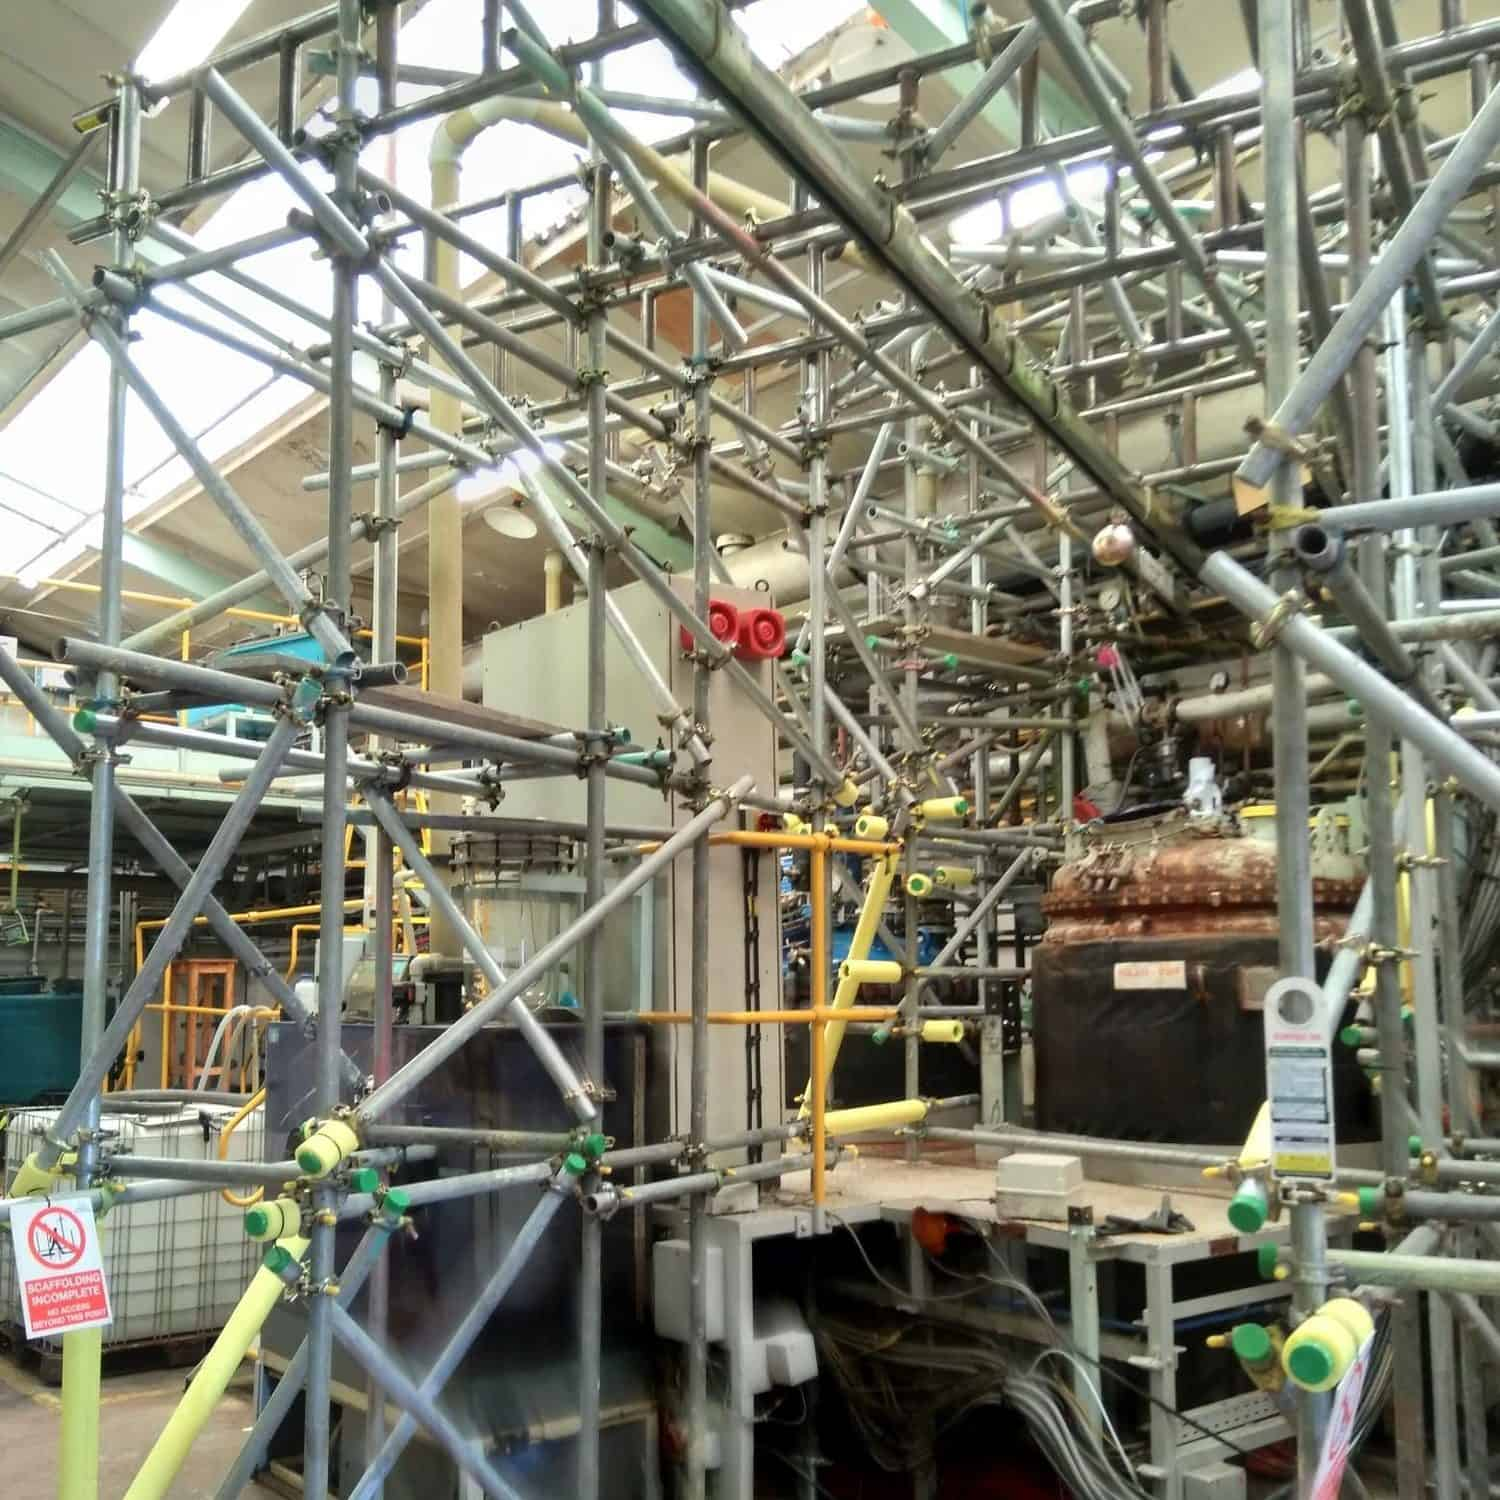 How Royston Scaffolding Designed, Constructed And Dismantled Industrial Scaffolding In One Week